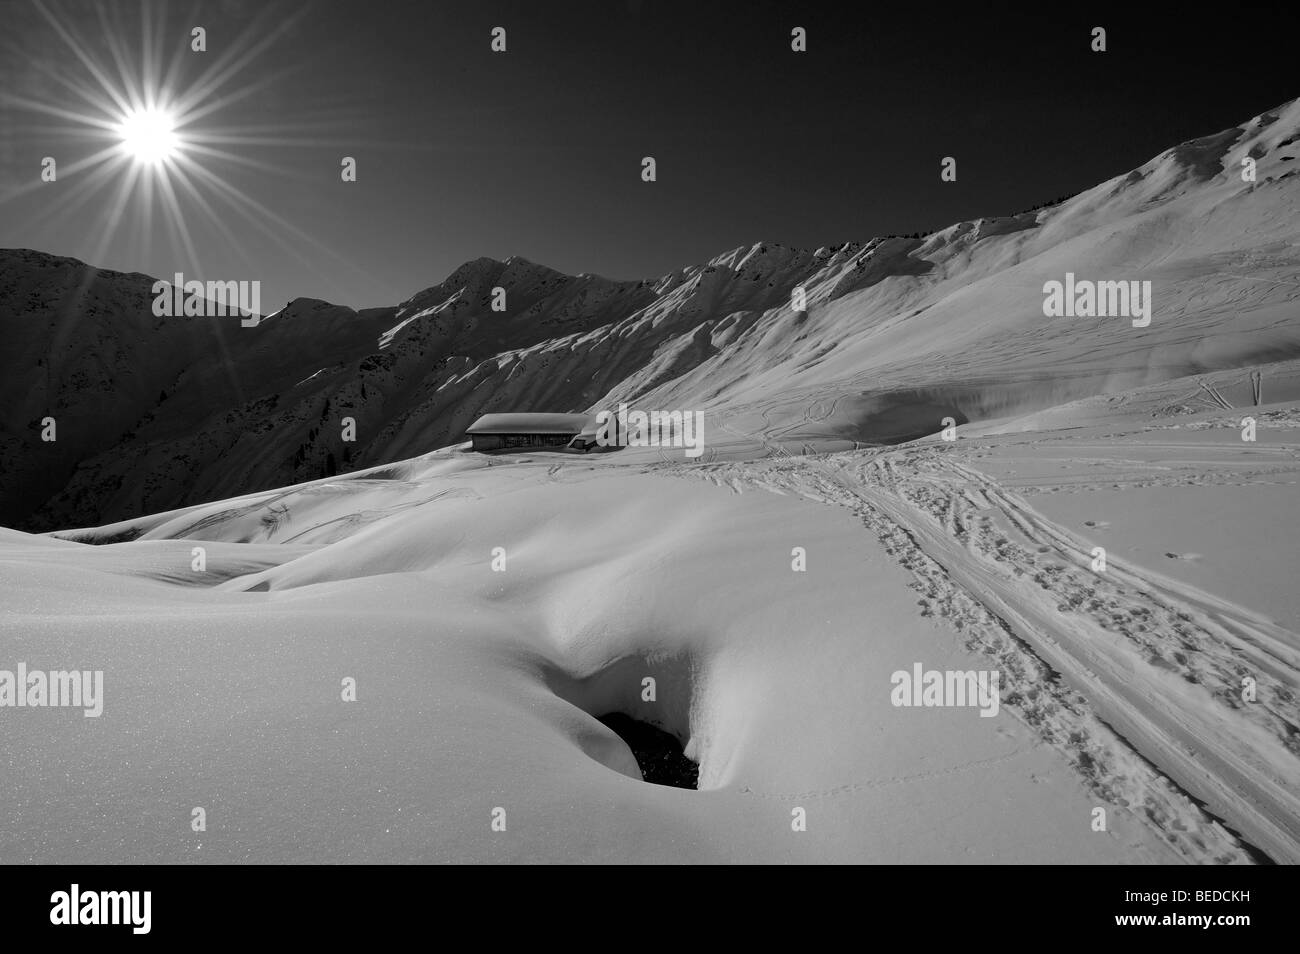 Skiing trail and alpine hut in snow-covered mountains, Mt Gruenhorn, Kleinwalsertal Valley, Austria, Europe - Stock Image